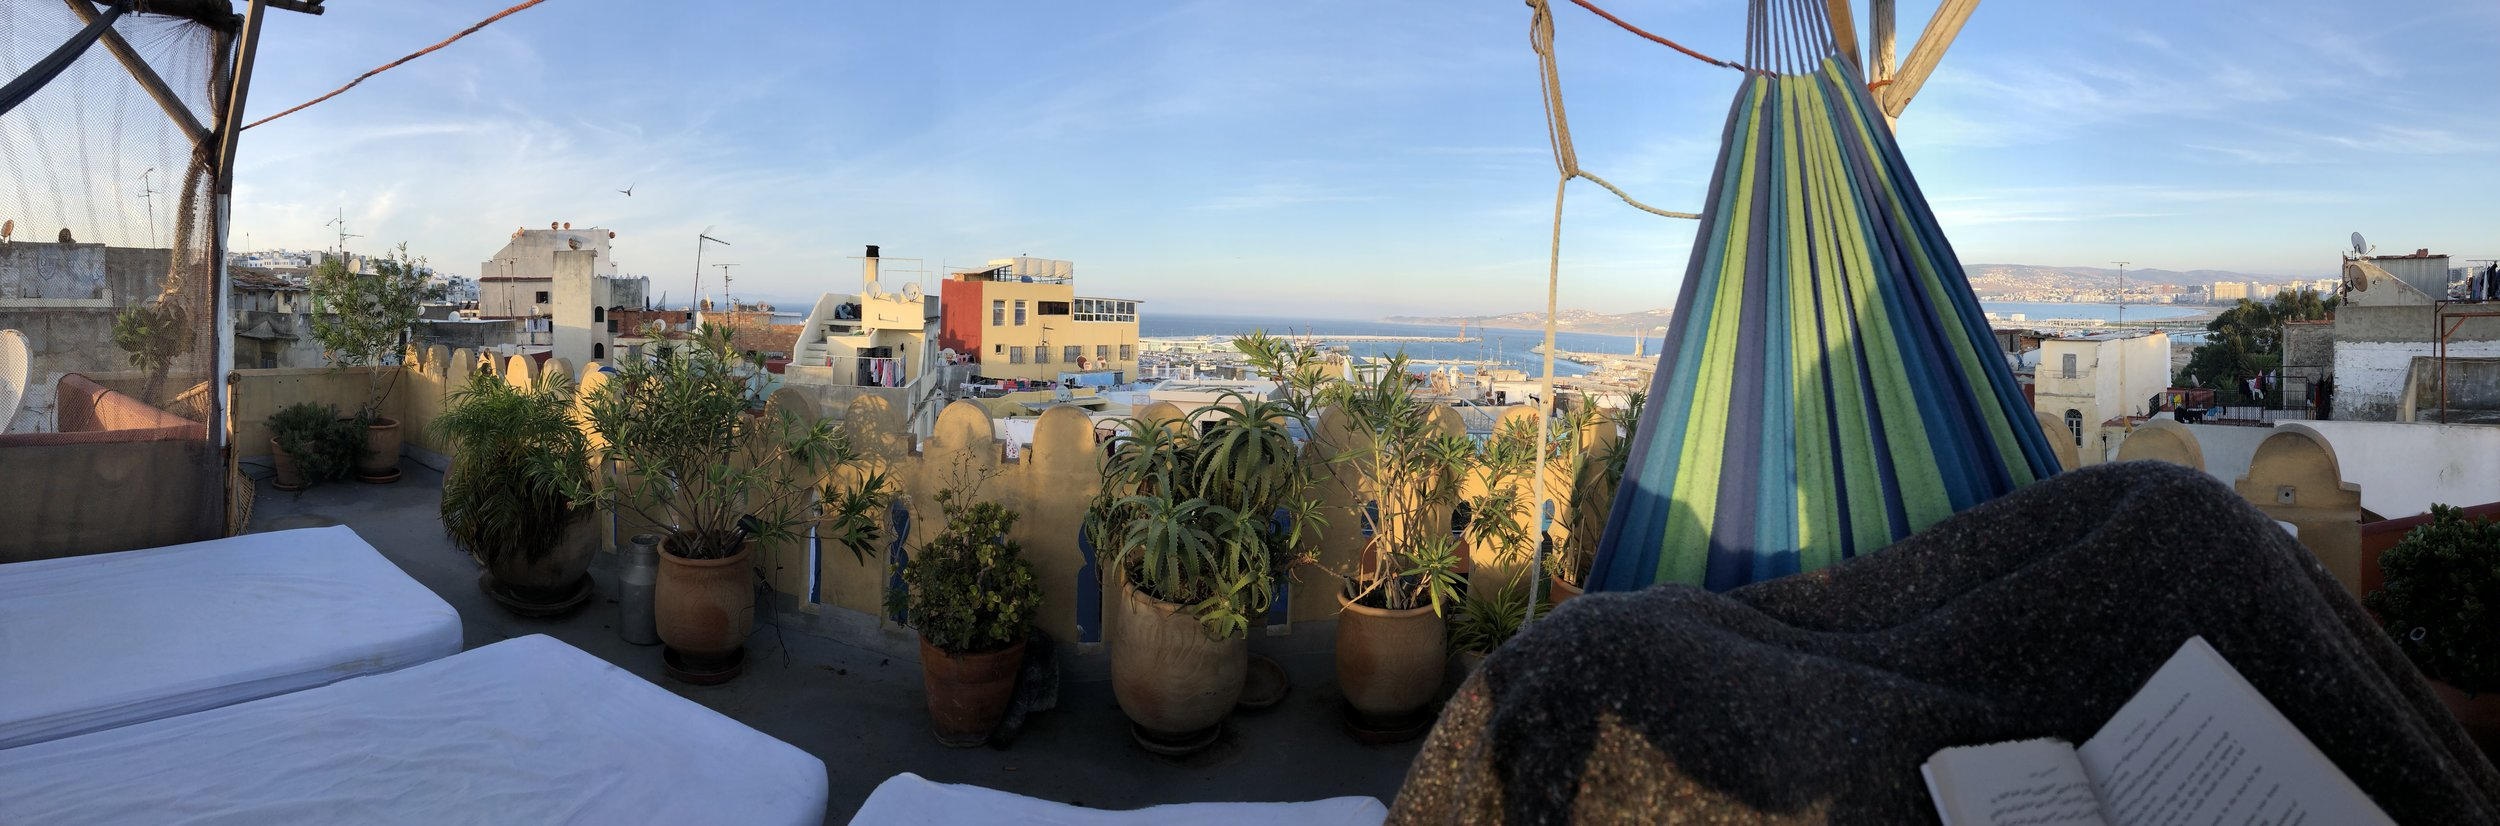 Reading Khalil Gibran's The Prophet on the rooftops of Tangier, Morocco